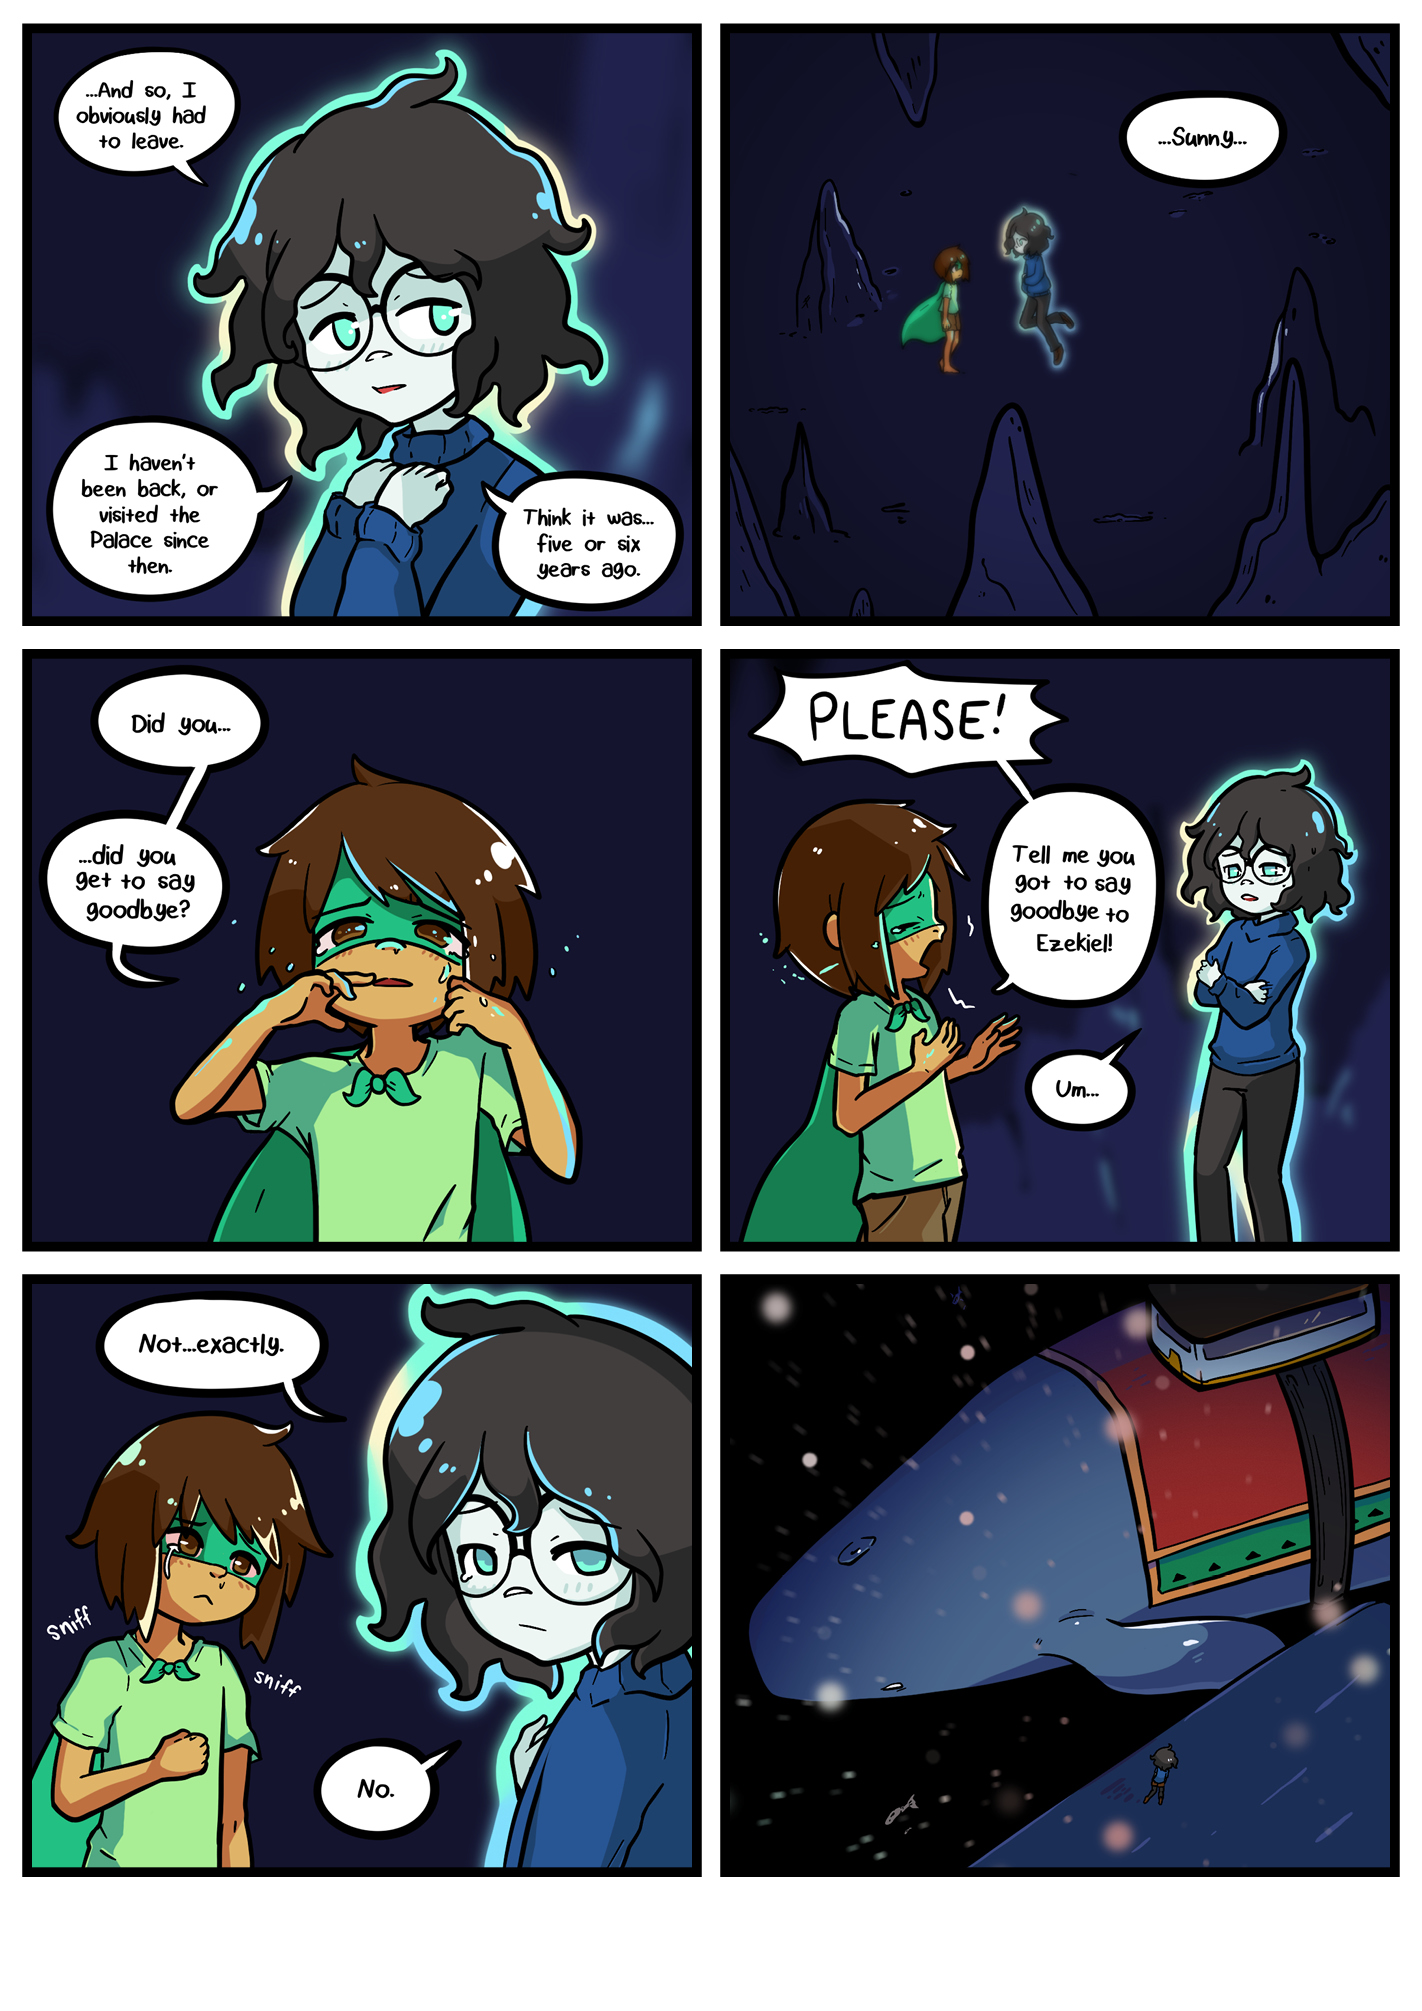 Seasick the underwater adventure comic, chapter 2 page 63 full